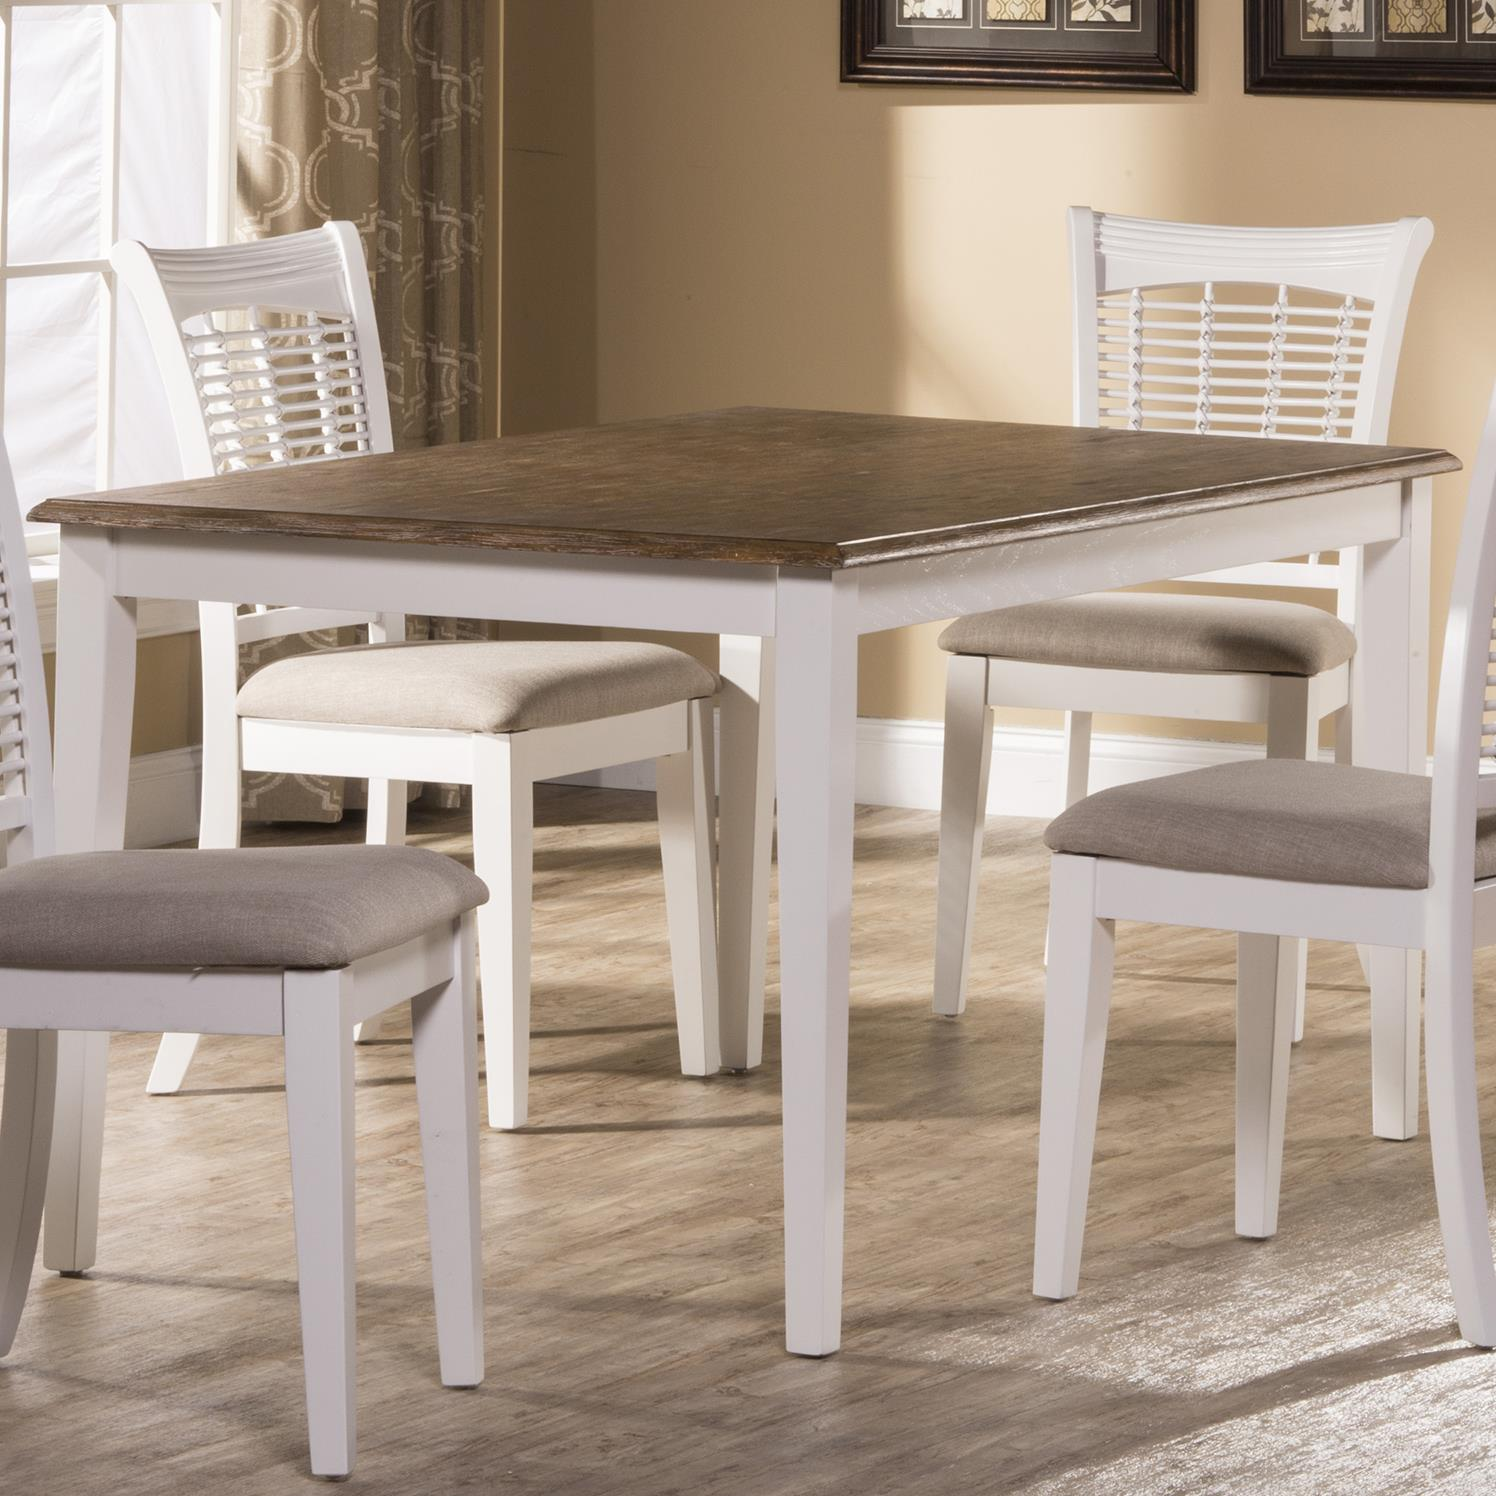 Hillsdale Dining Table Casual Rectangular Dining Table By Hillsdale Wolf And Gardiner